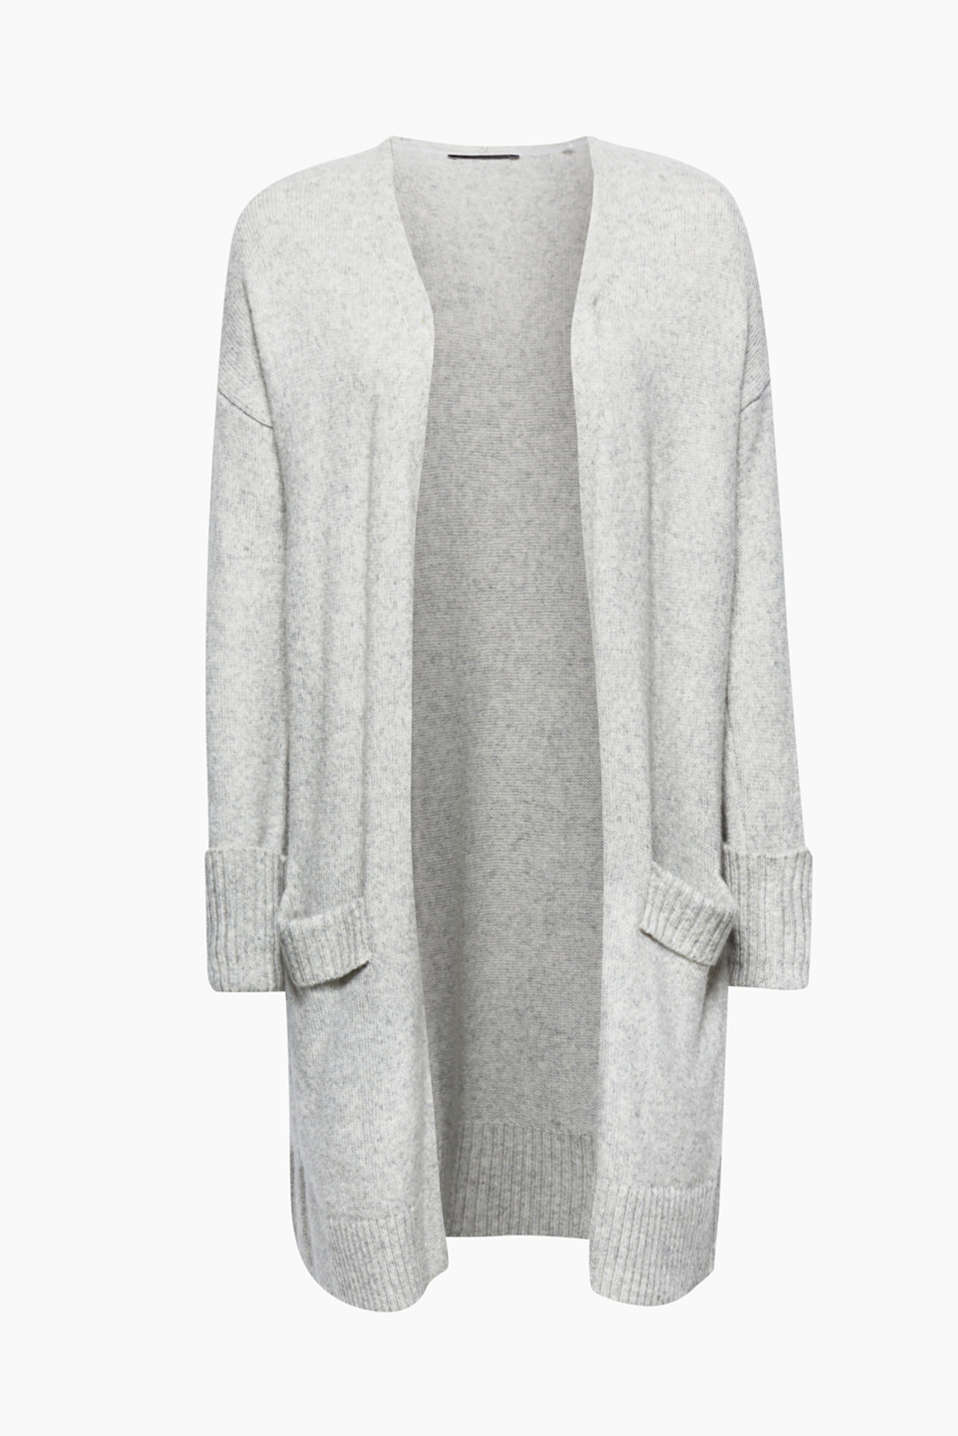 Comfy knitwear: this open, melange long cardigan with patch pockets is a prime example!